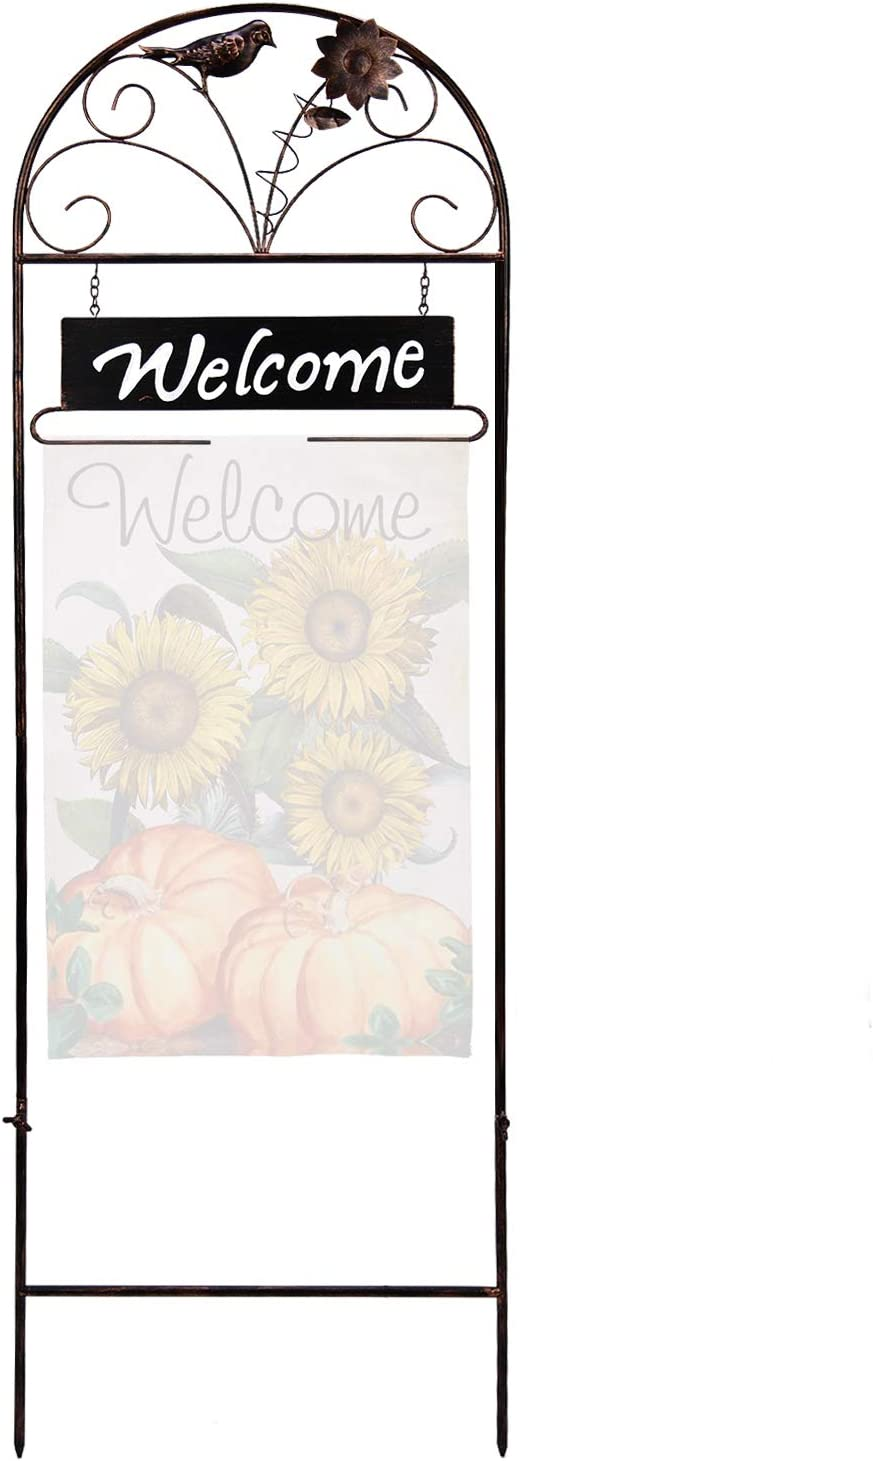 YEAHOME Garden Flag Arbor Stand - Weather-Proof Flag Holder for Yard with Welcoming Sign, Sturdy Copper Painted Metal Stakes, Iron Bird and Flower Decor Stand for St Patricks Day Easter Garden Flag